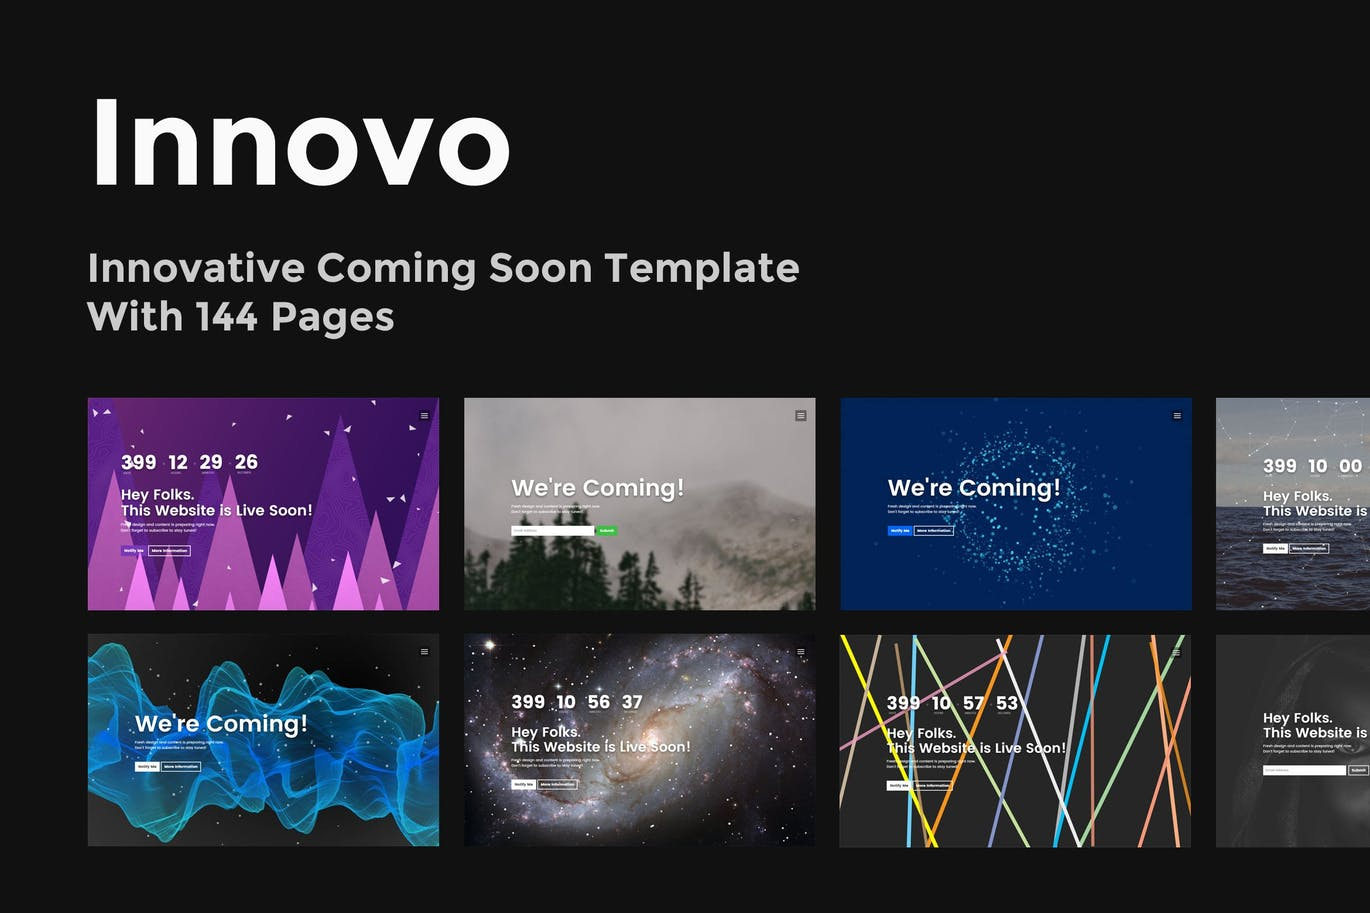 Innovo Innovative Coming Soon Template By Themestarz On Envato